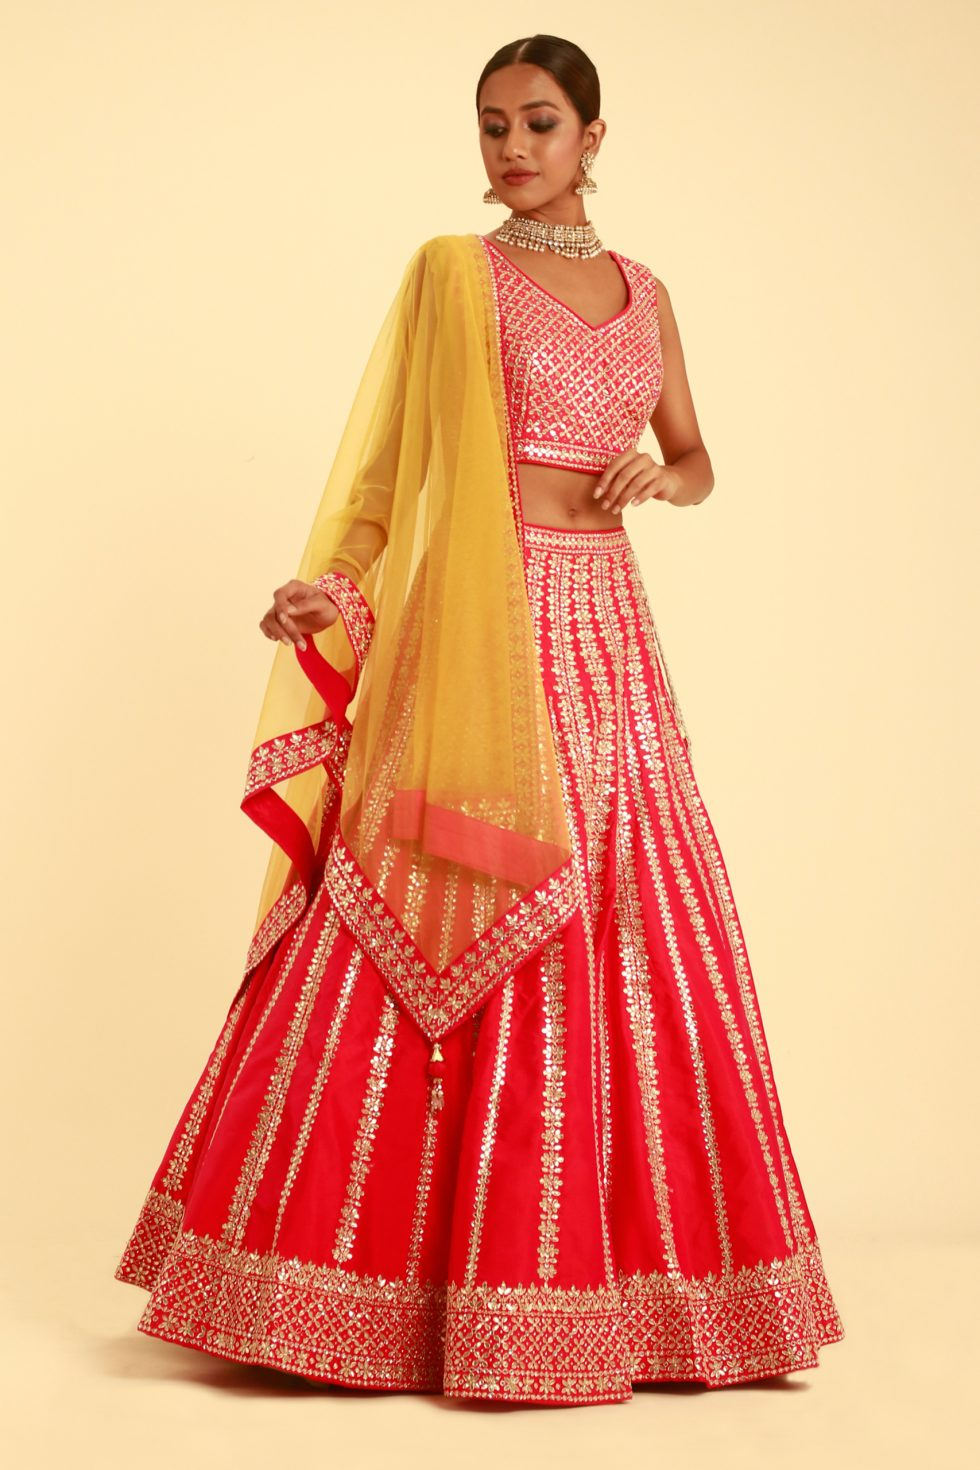 Cherry red gota work lehenga set with contrast yellow dupatta and matching embroidered border